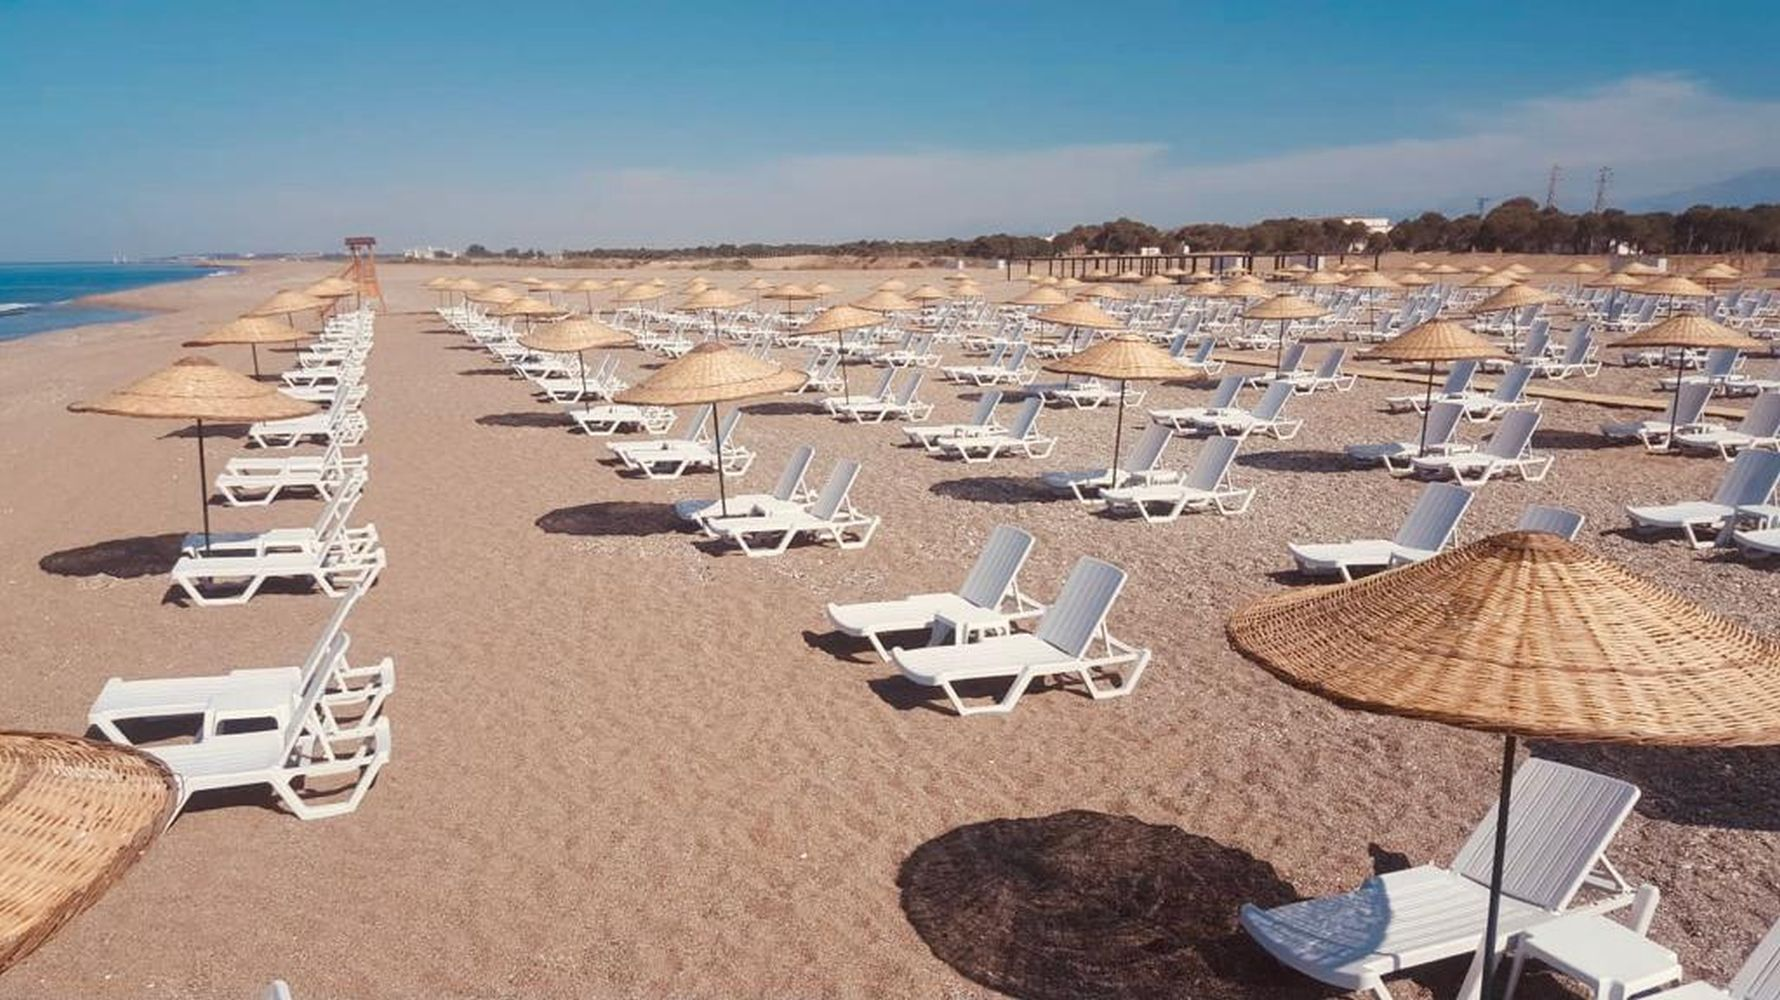 manavgat free public beach and recreation area opened for service